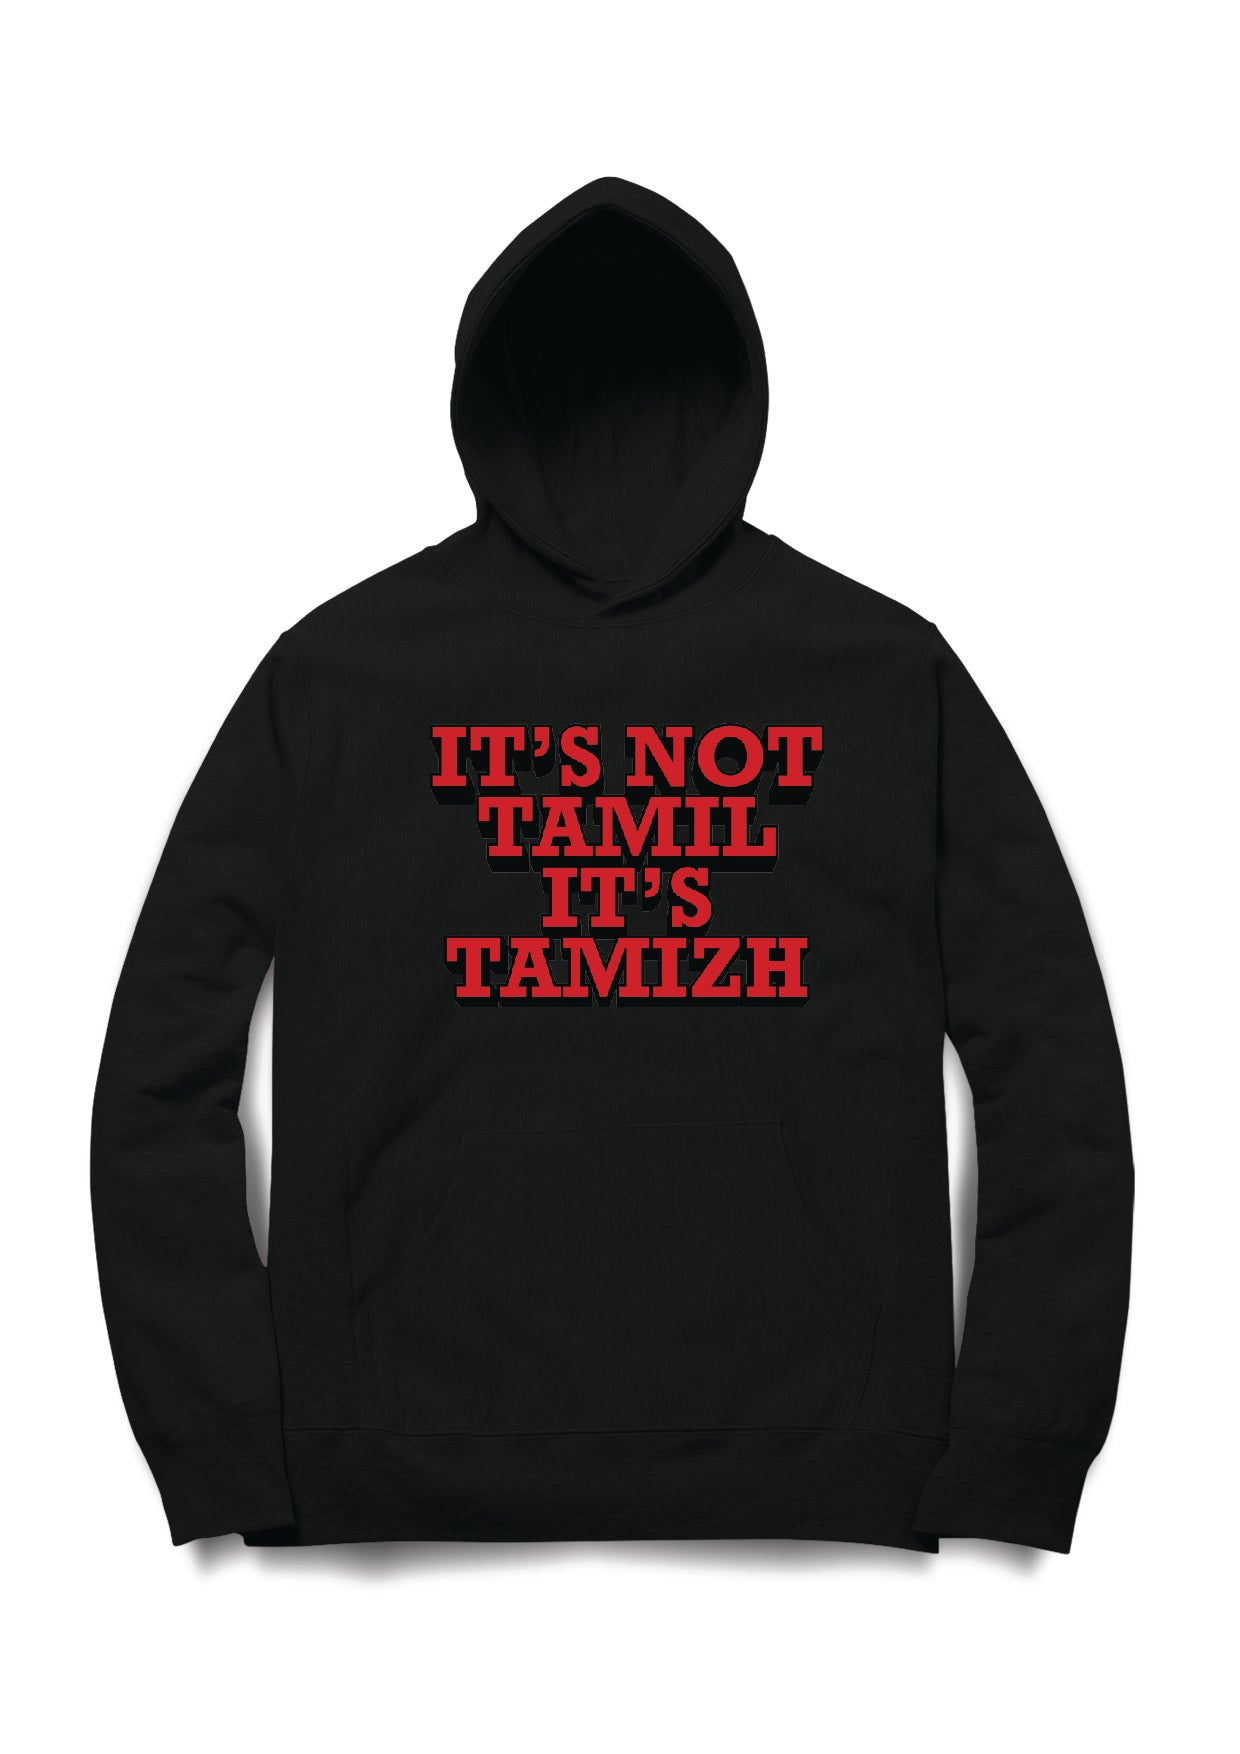 IT'S NOT TAMIL IT'S TAMIZH - Almytees